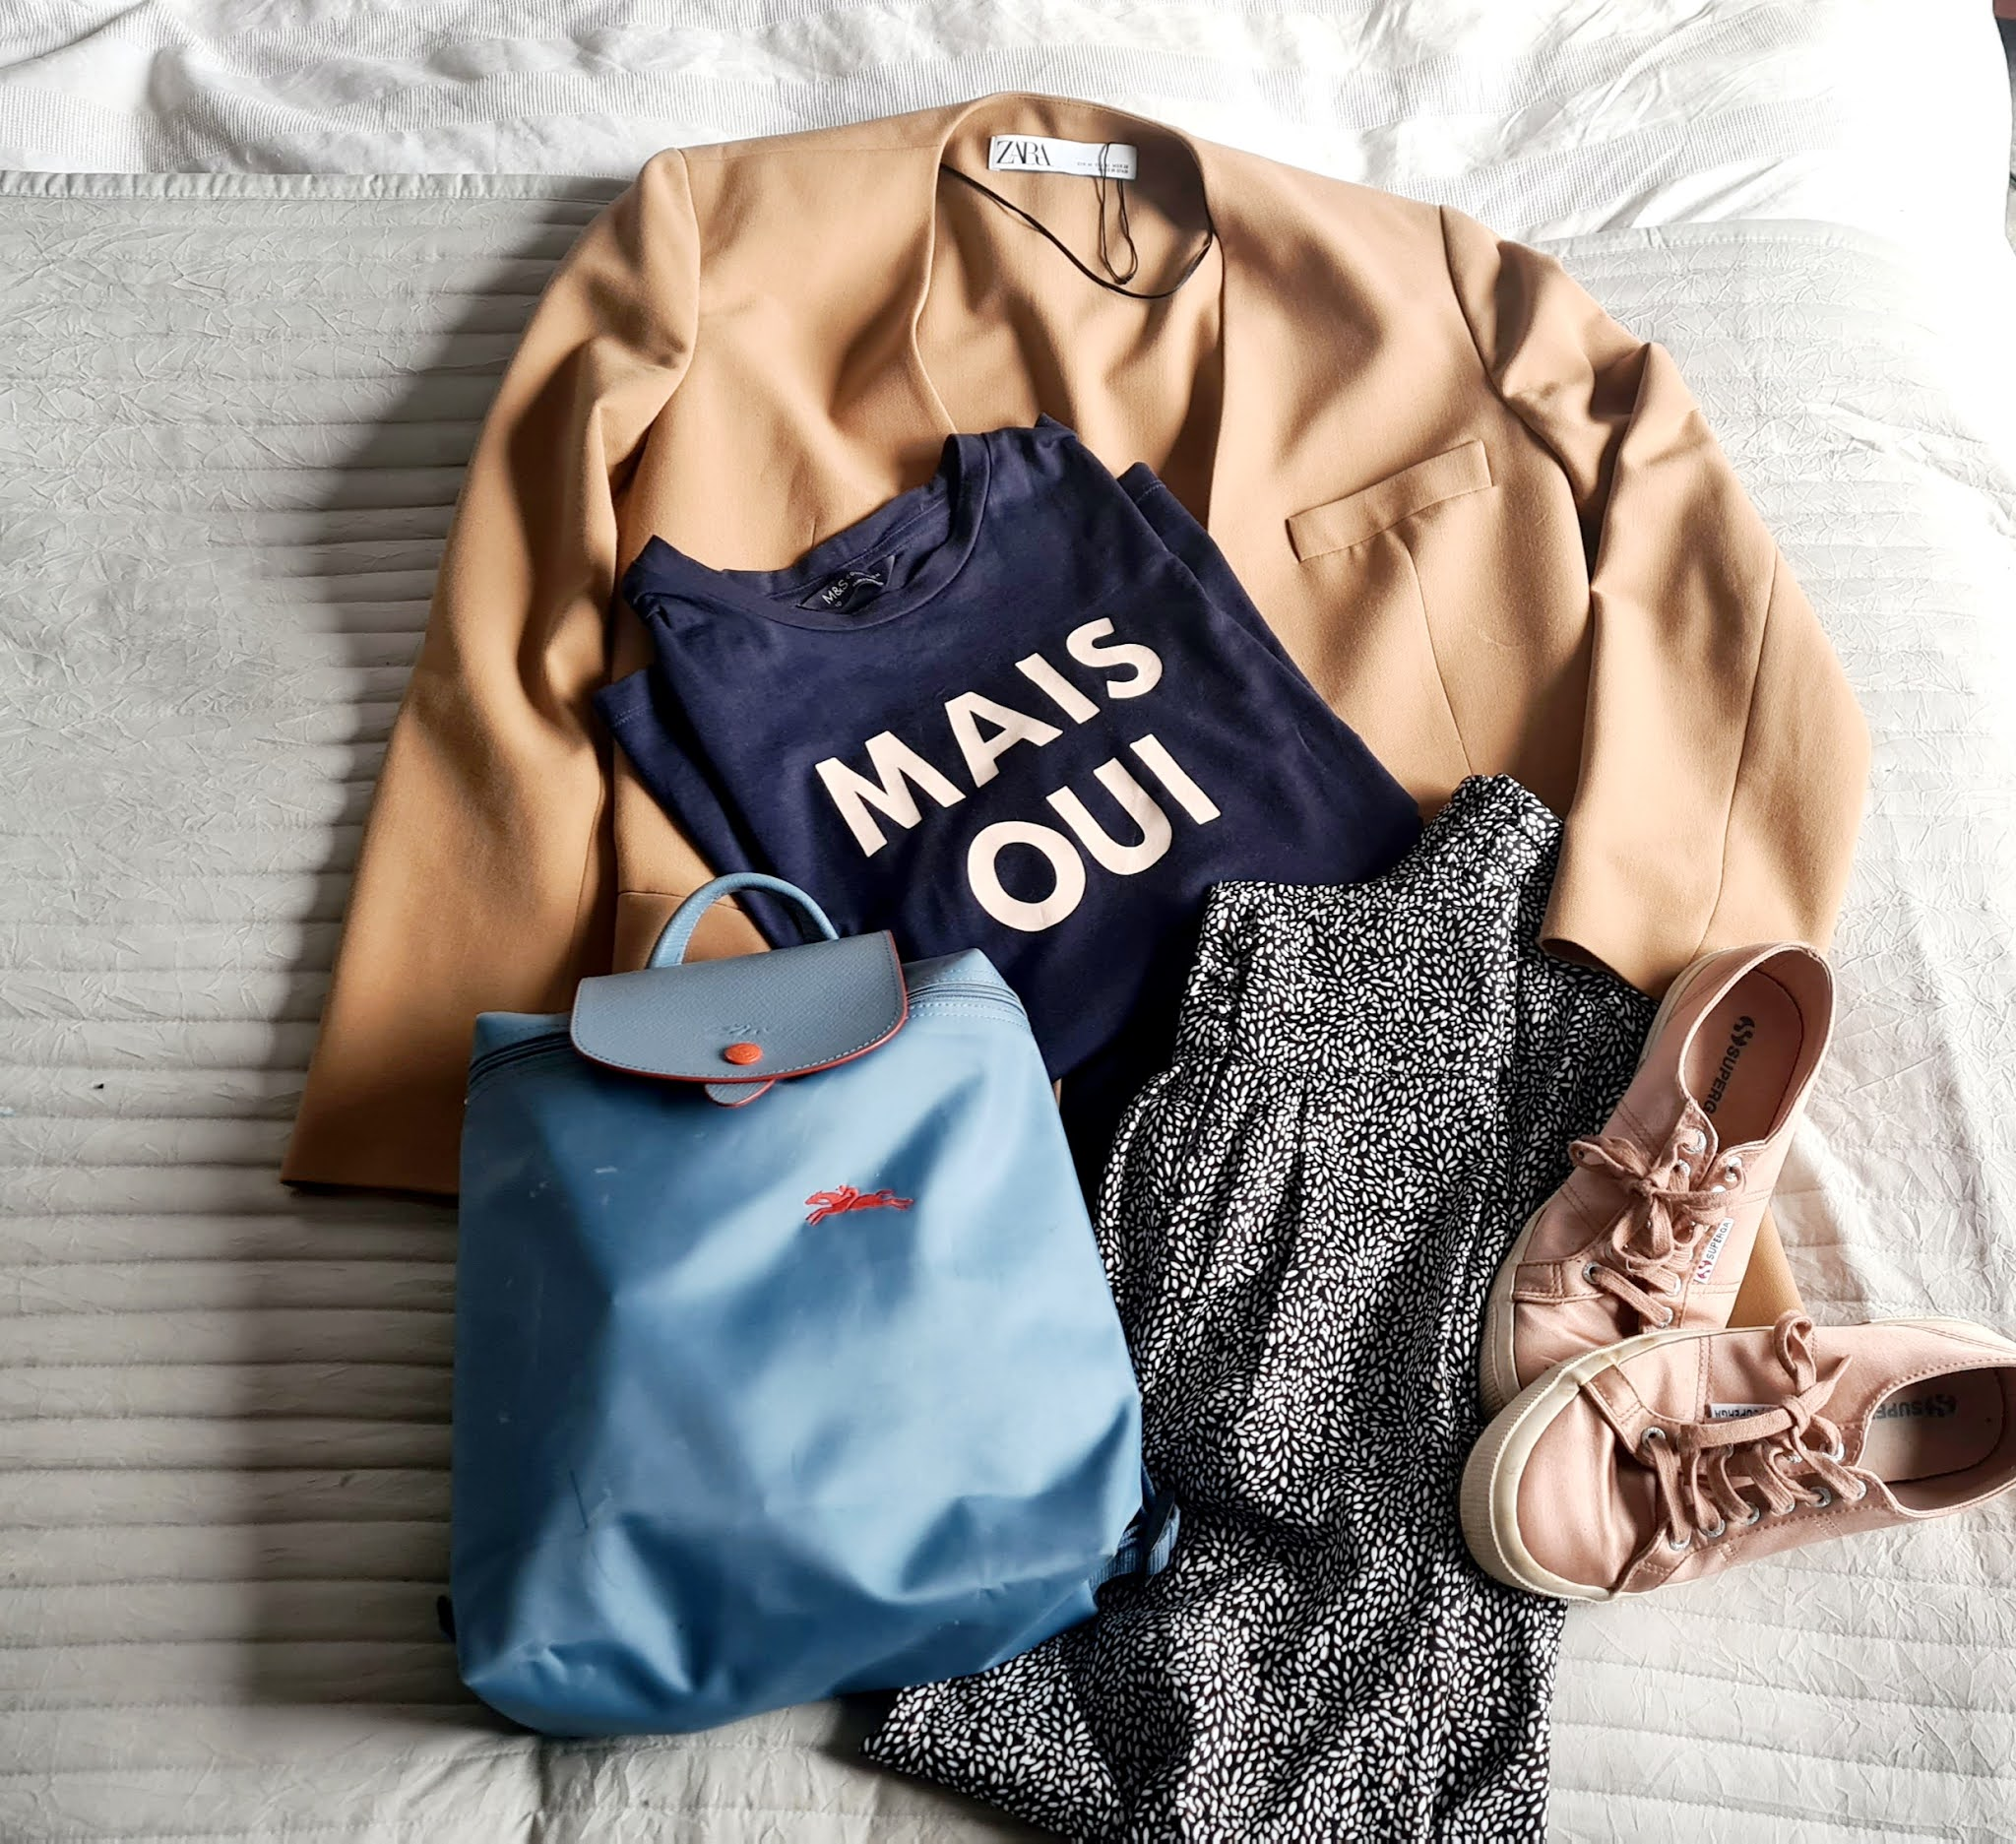 Brunch outfit, brunch outfit 2021, brunch outfit ideas spring, silk joggers outfit, supergas outfit, slogan tshirt outfit